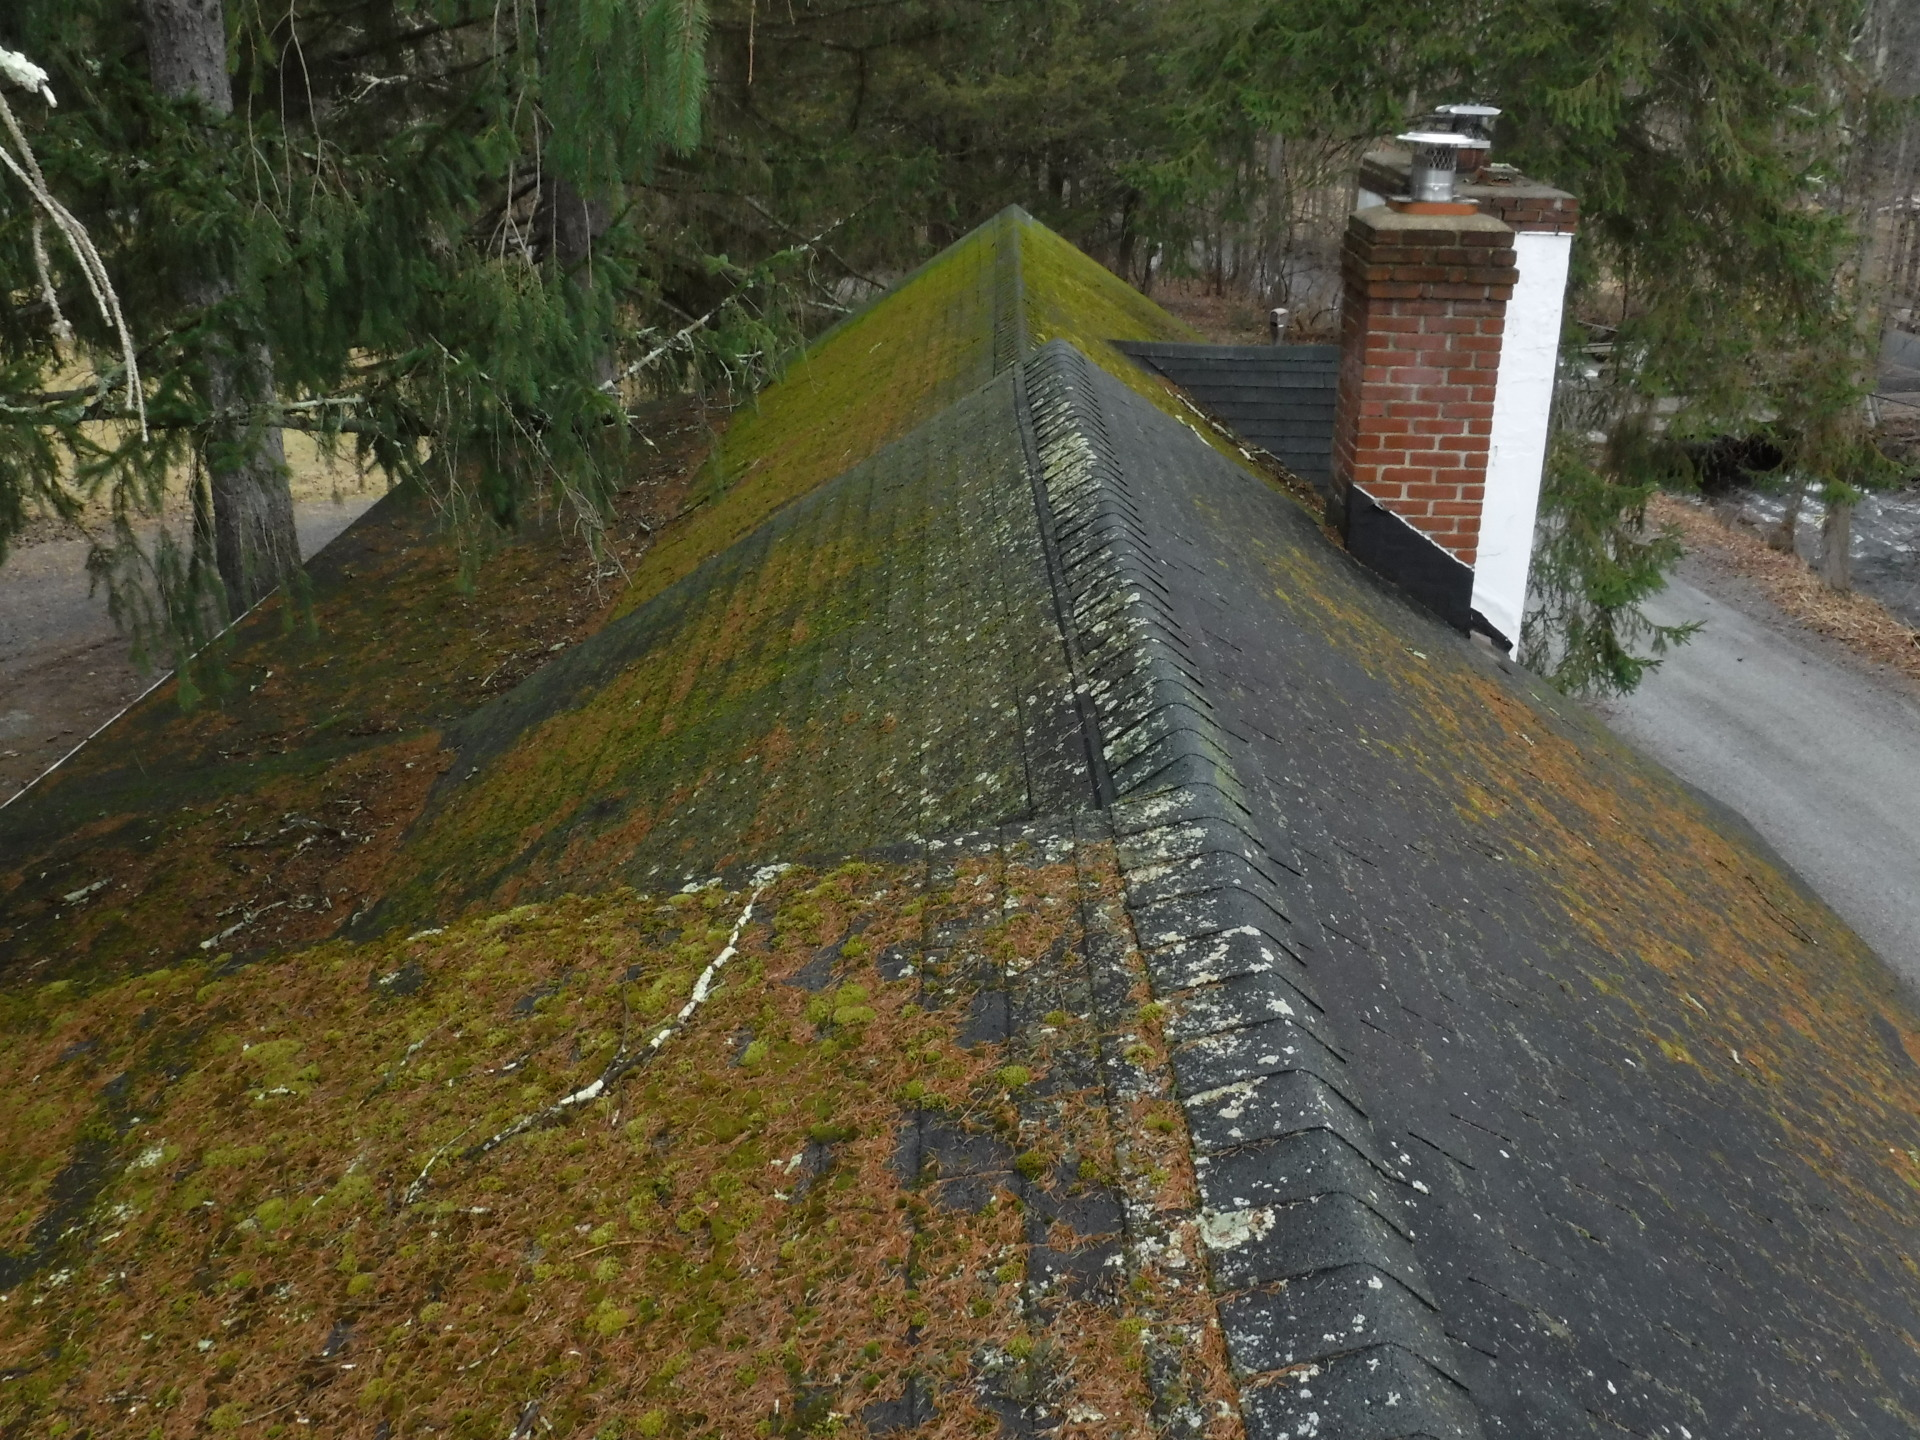 Moss growth on the roof.